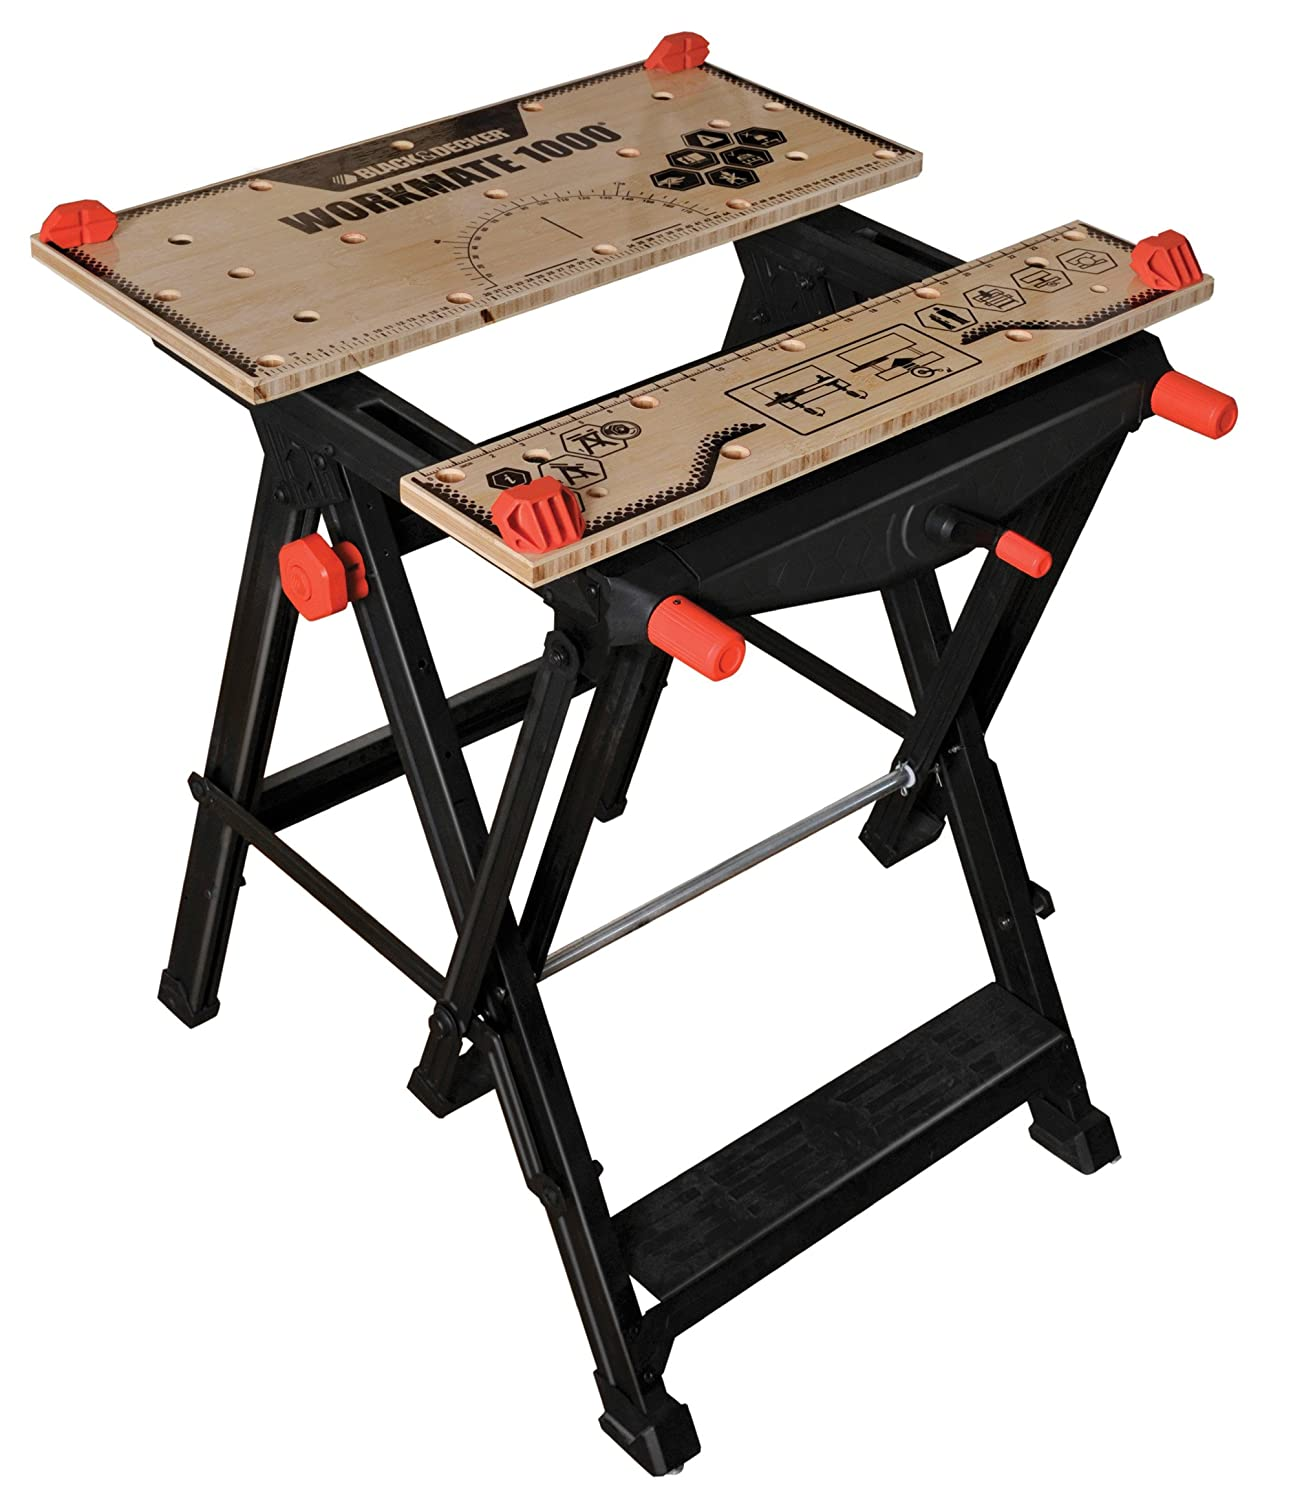 Folding table keter - Black Decker Workmate 1000 Wm1000 Xj Clamping Table